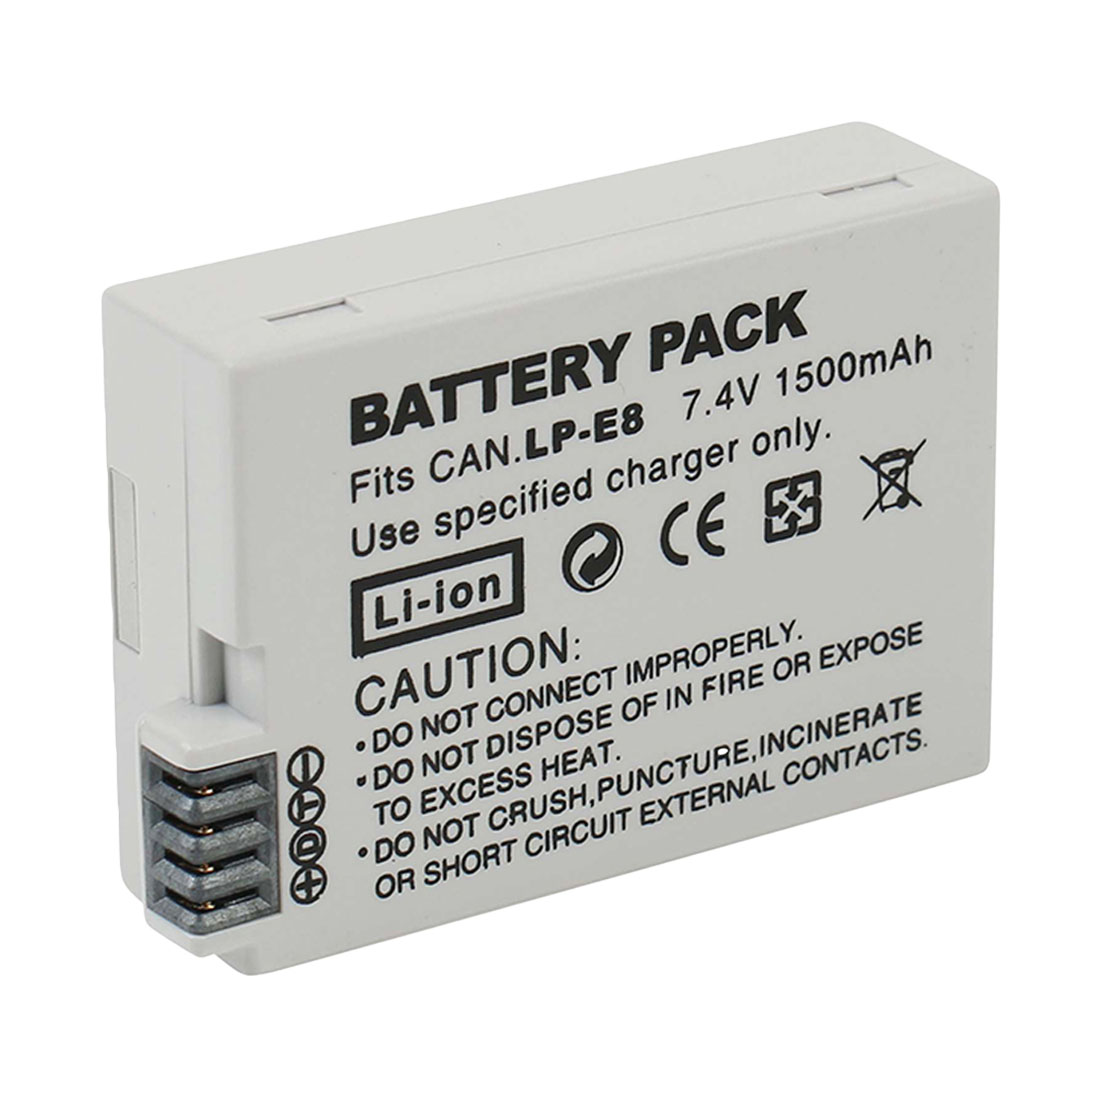 High Quality LP-E8 <font><b>Battery</b></font> Pack Bateria LP-E8 Lp E8 For <font><b>Canon</b></font> <font><b>550D</b></font> 600D 650D 700D X4 X5 X6i X7i T2i T3i T4i T5i DSLR Camera 0.11 image